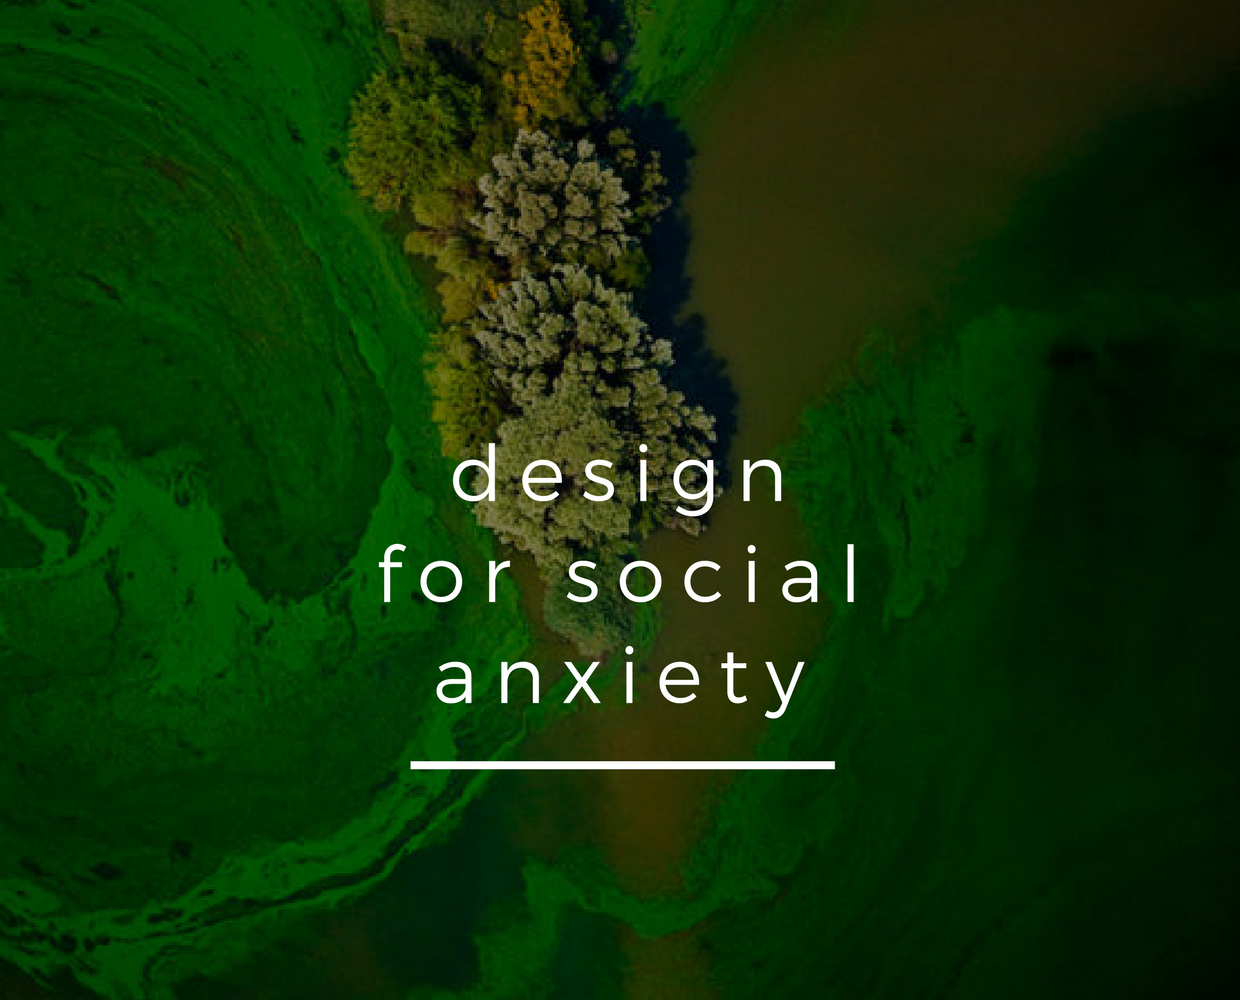 Design for Social Anxiety